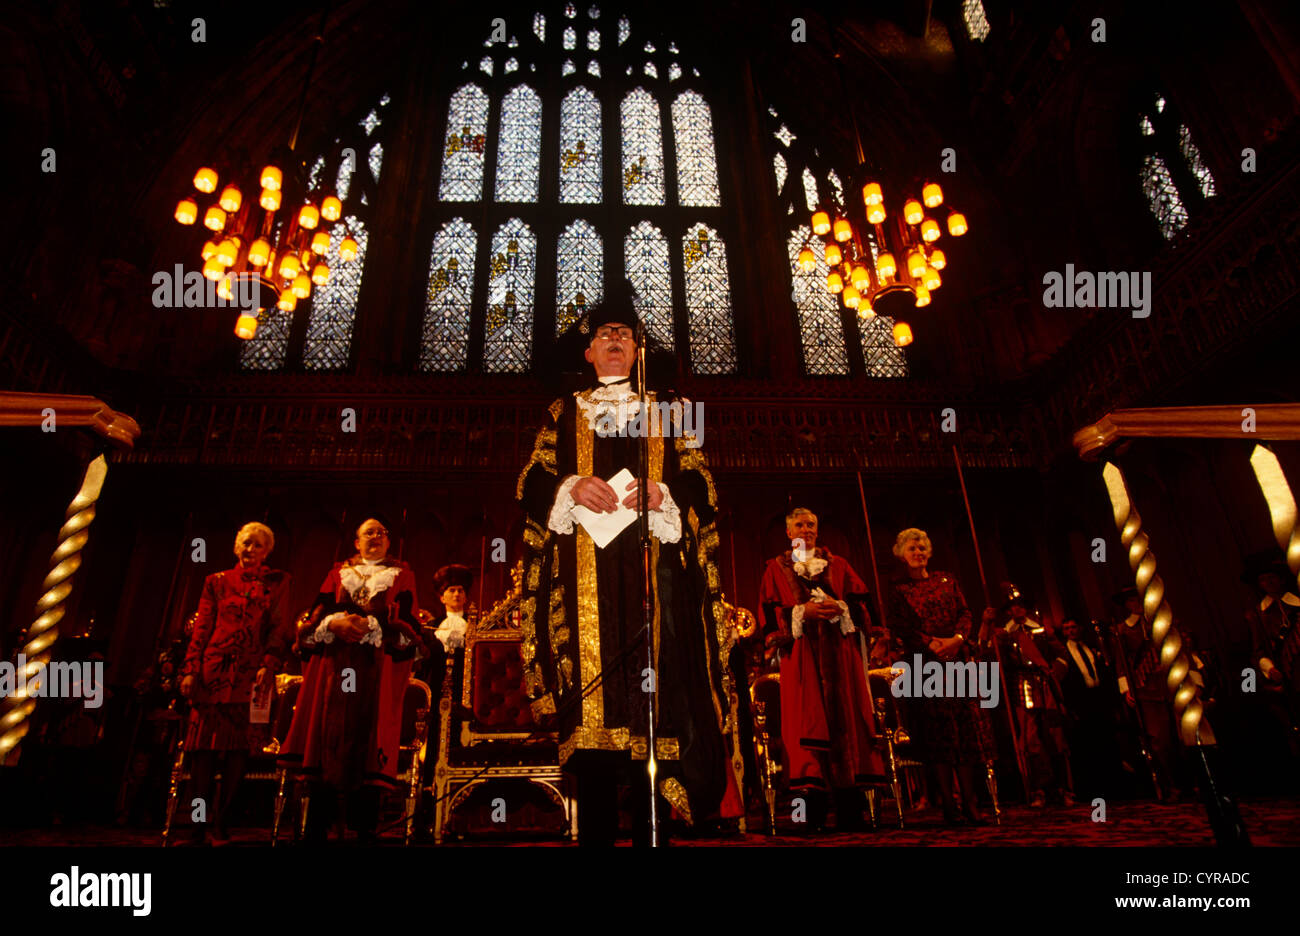 Lord Mayor of London makes a speech in front of invited guests and VIPs, hosting his annual party in the Guildhall. - Stock Image